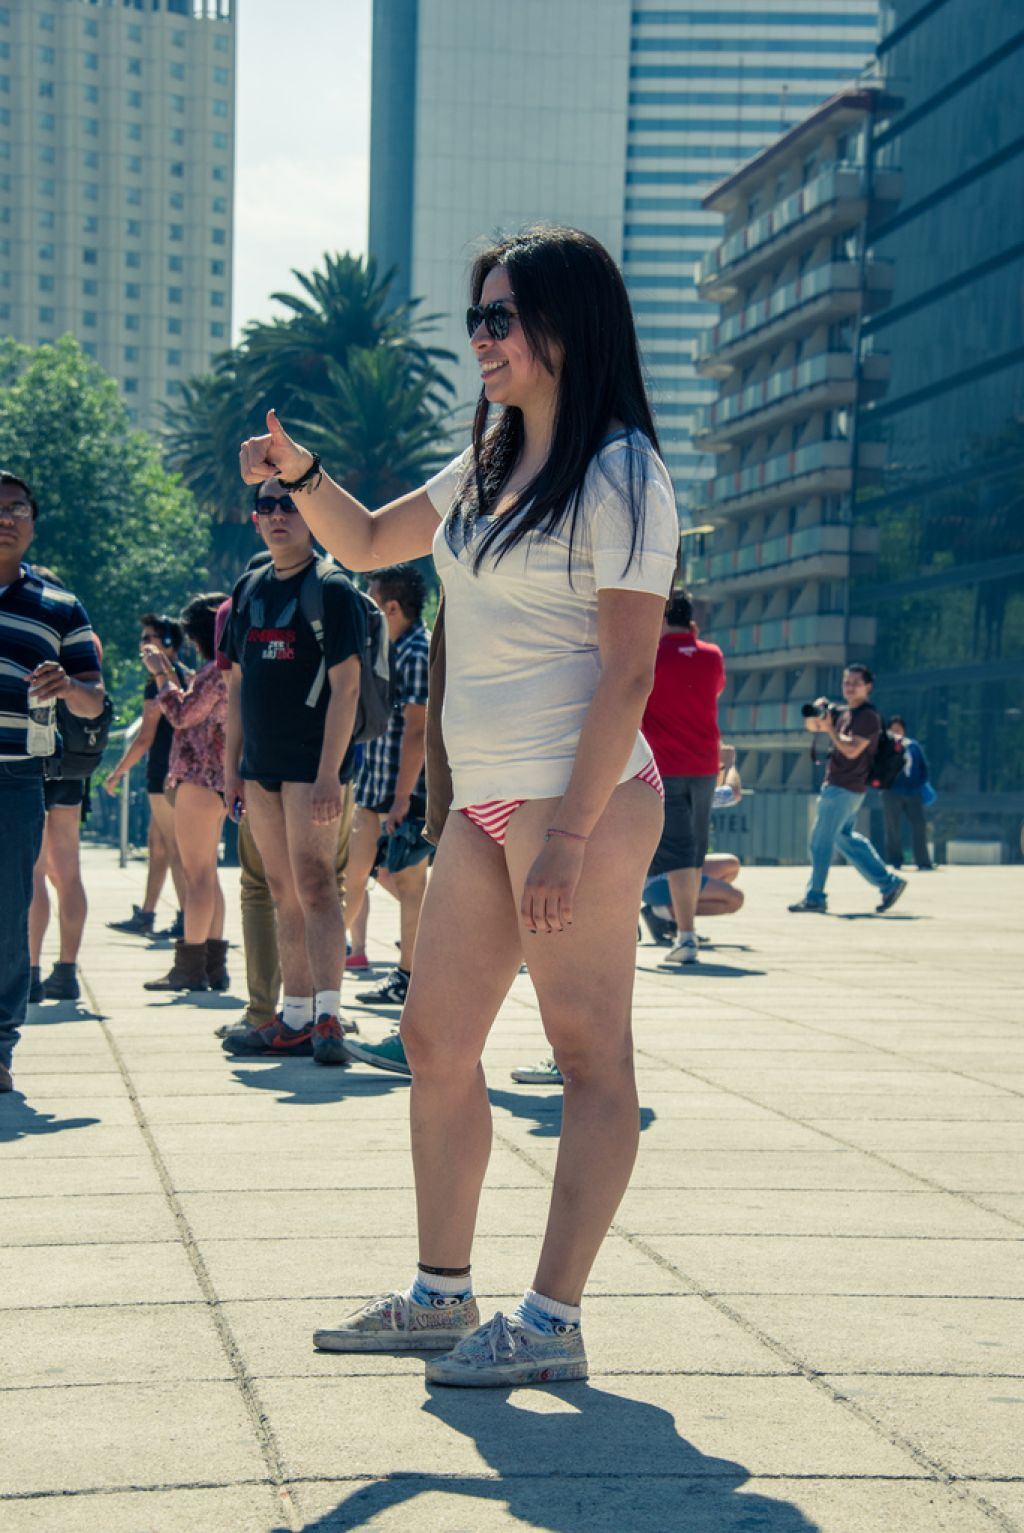 no pants12 No Pants Day in Mexico City